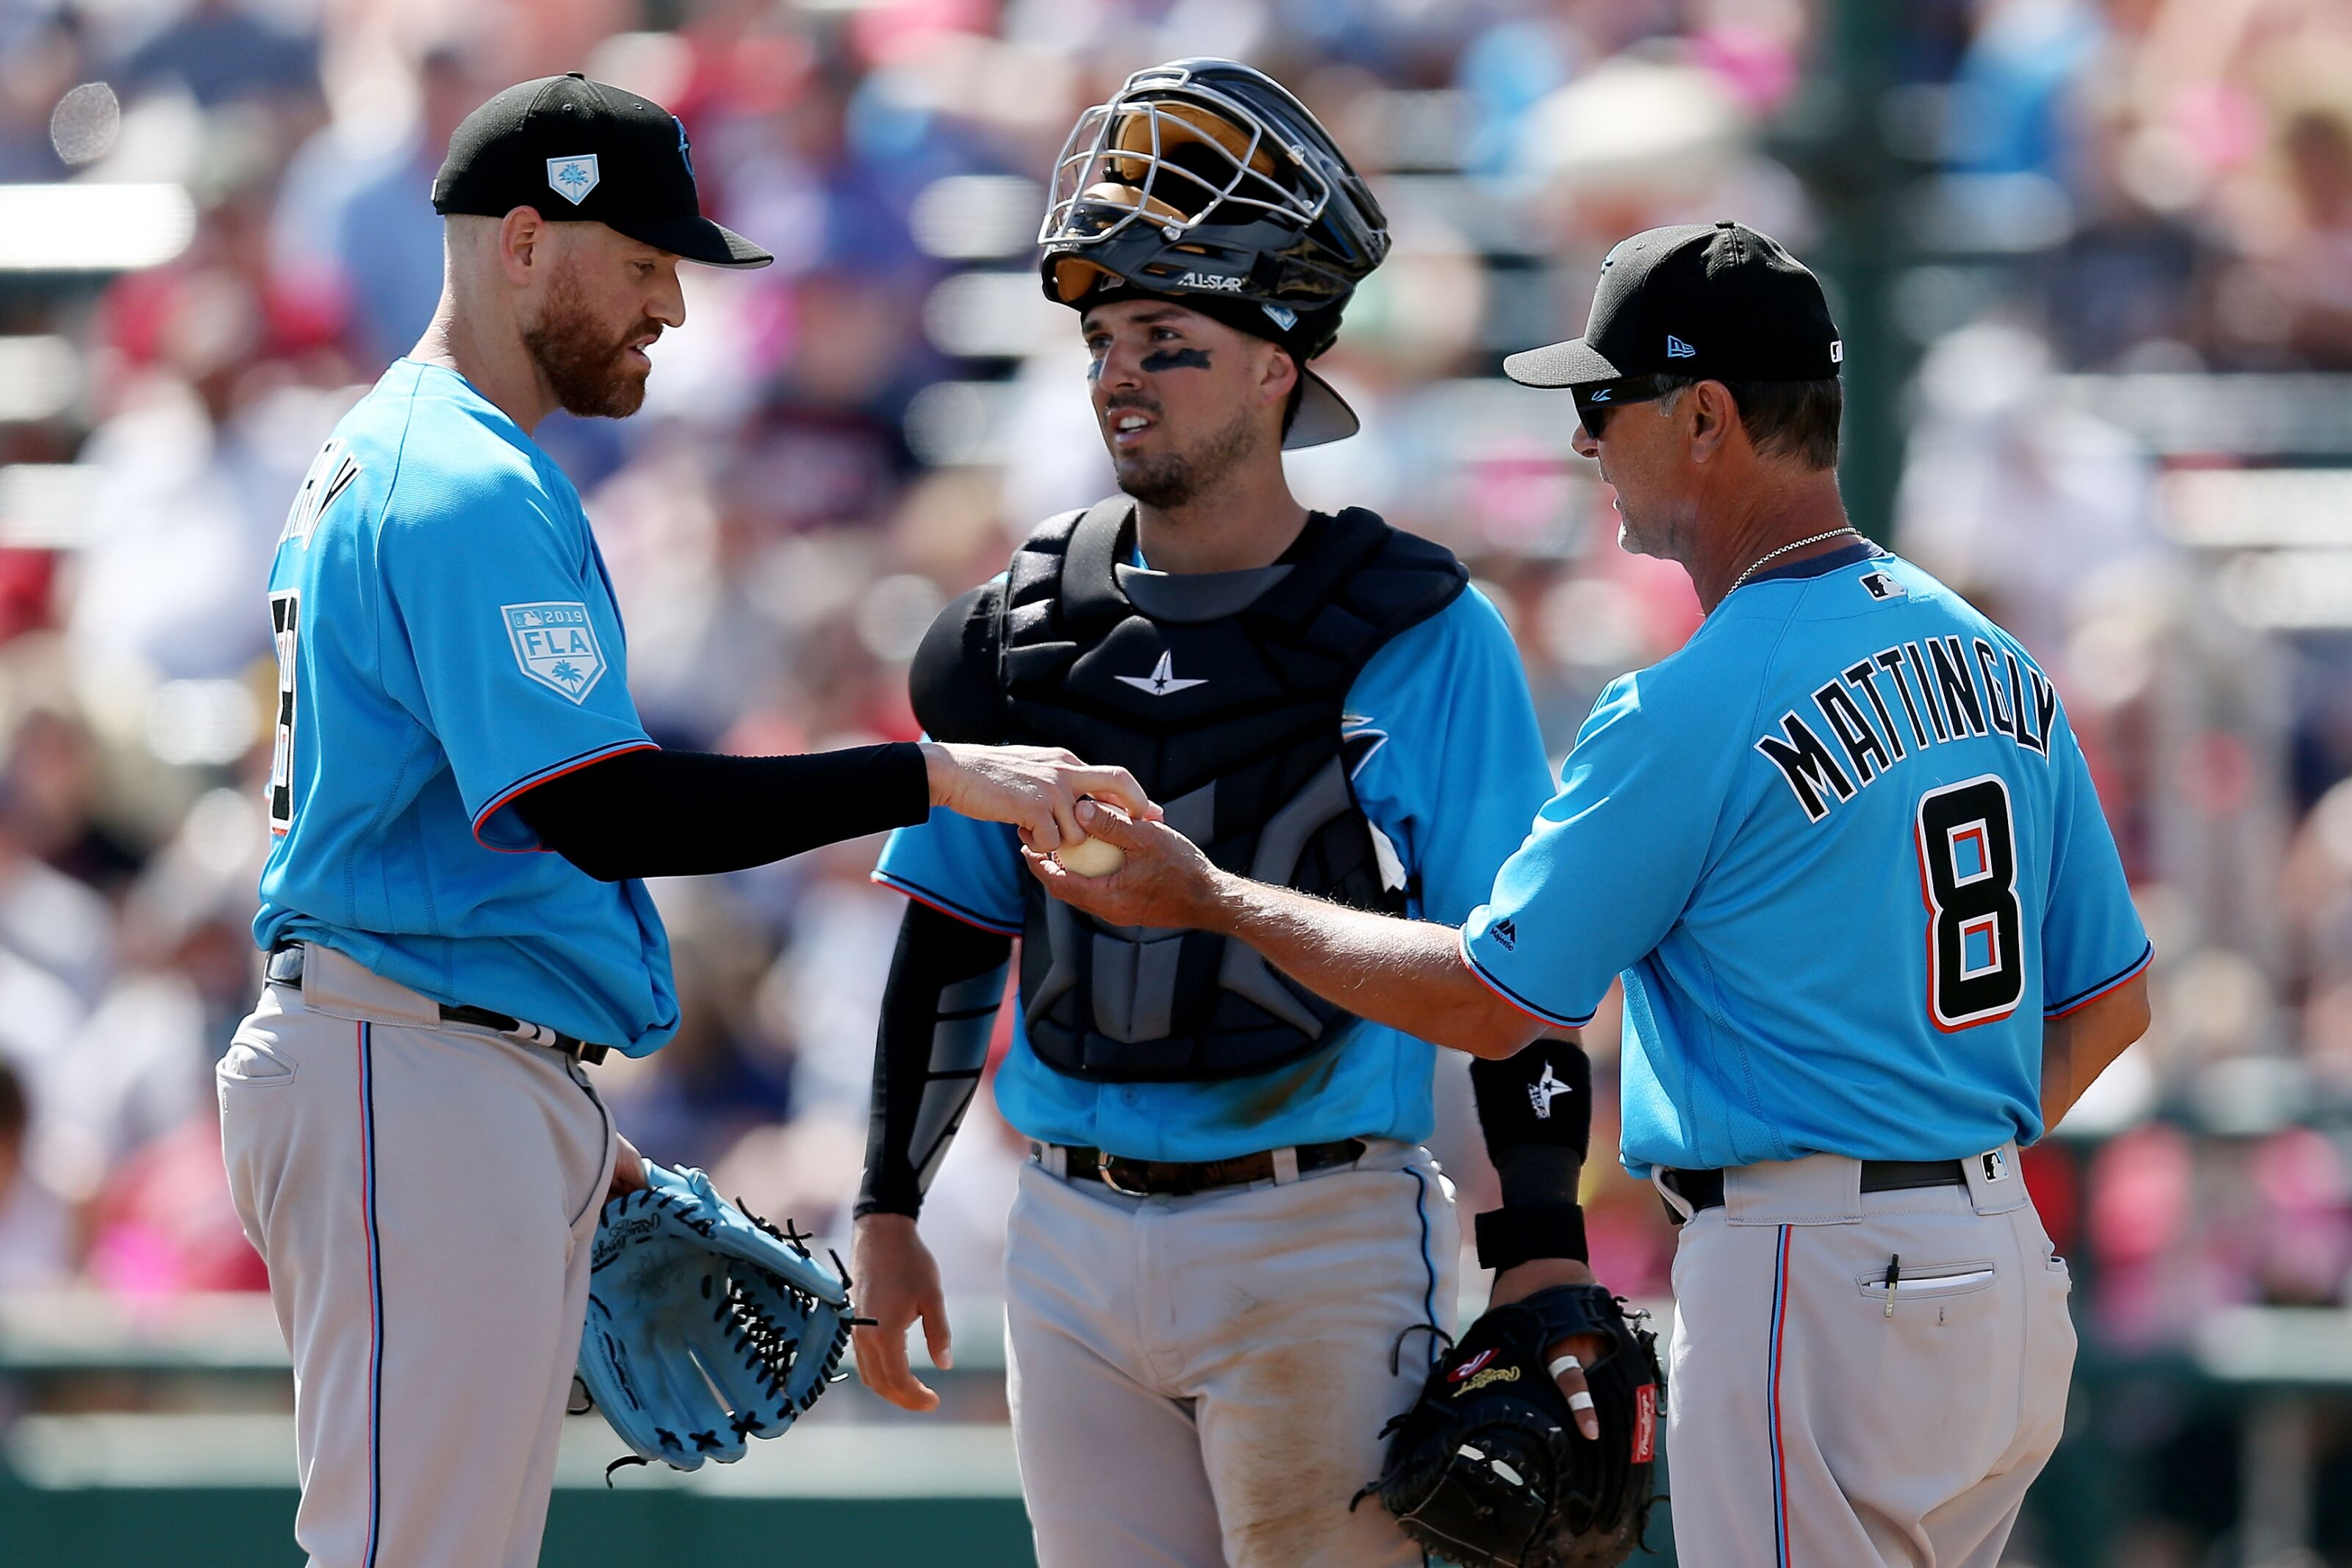 e4ea2d40 For the Miami Marlins, the future is based on pitching